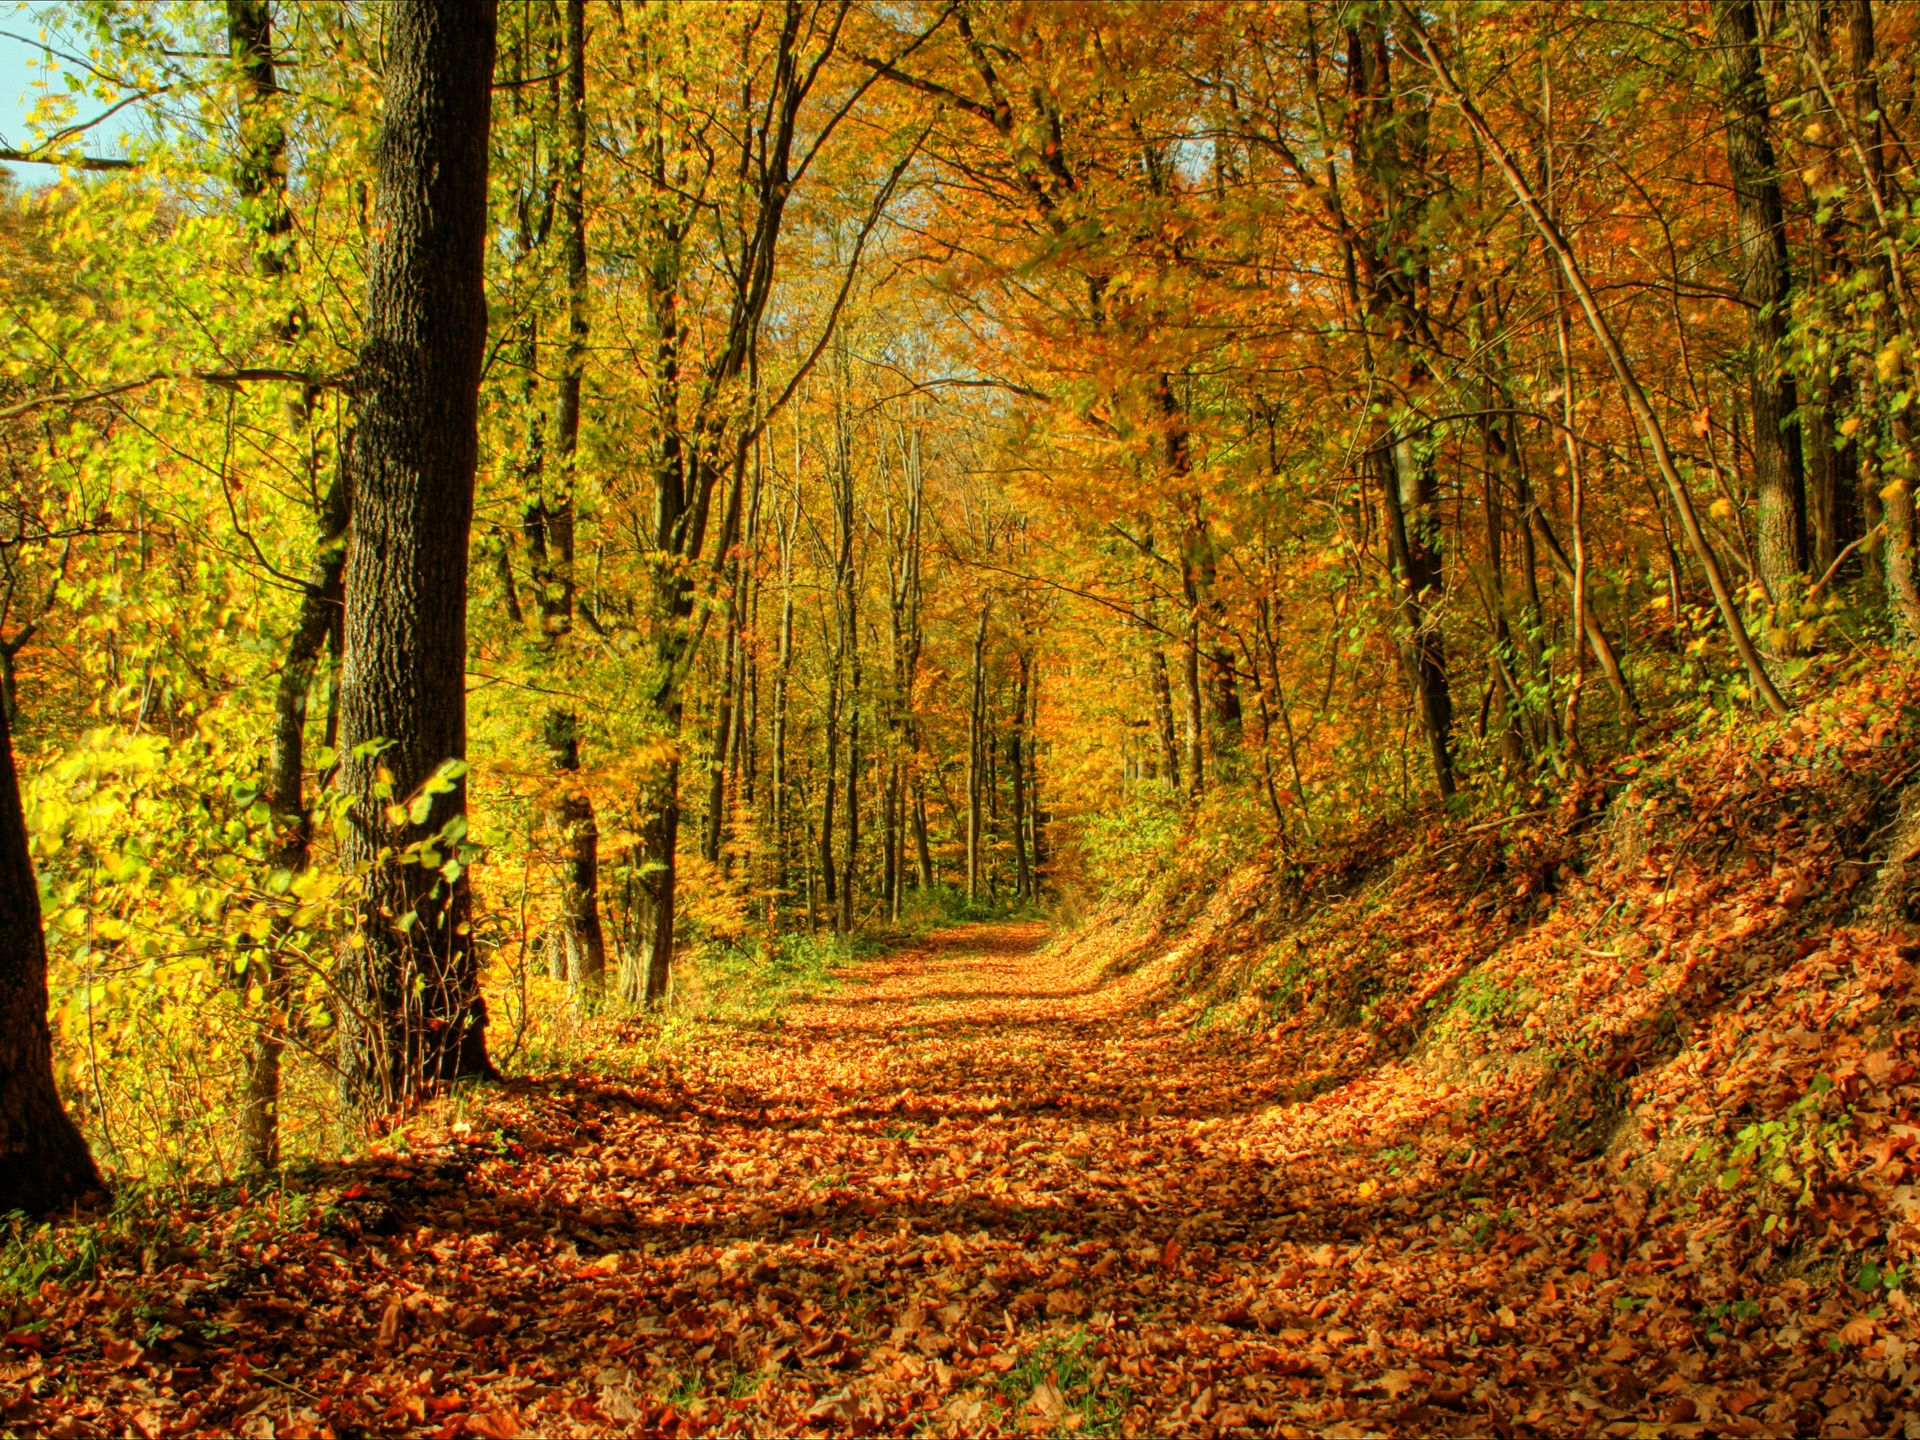 Wallpaper Collection 37 Free Hd Fall Desktop Backgrounds Background To Download And Use Pc Mobile Tablette En 2020 Fond Ecran Paysage Fond D Automne Foret D Automne